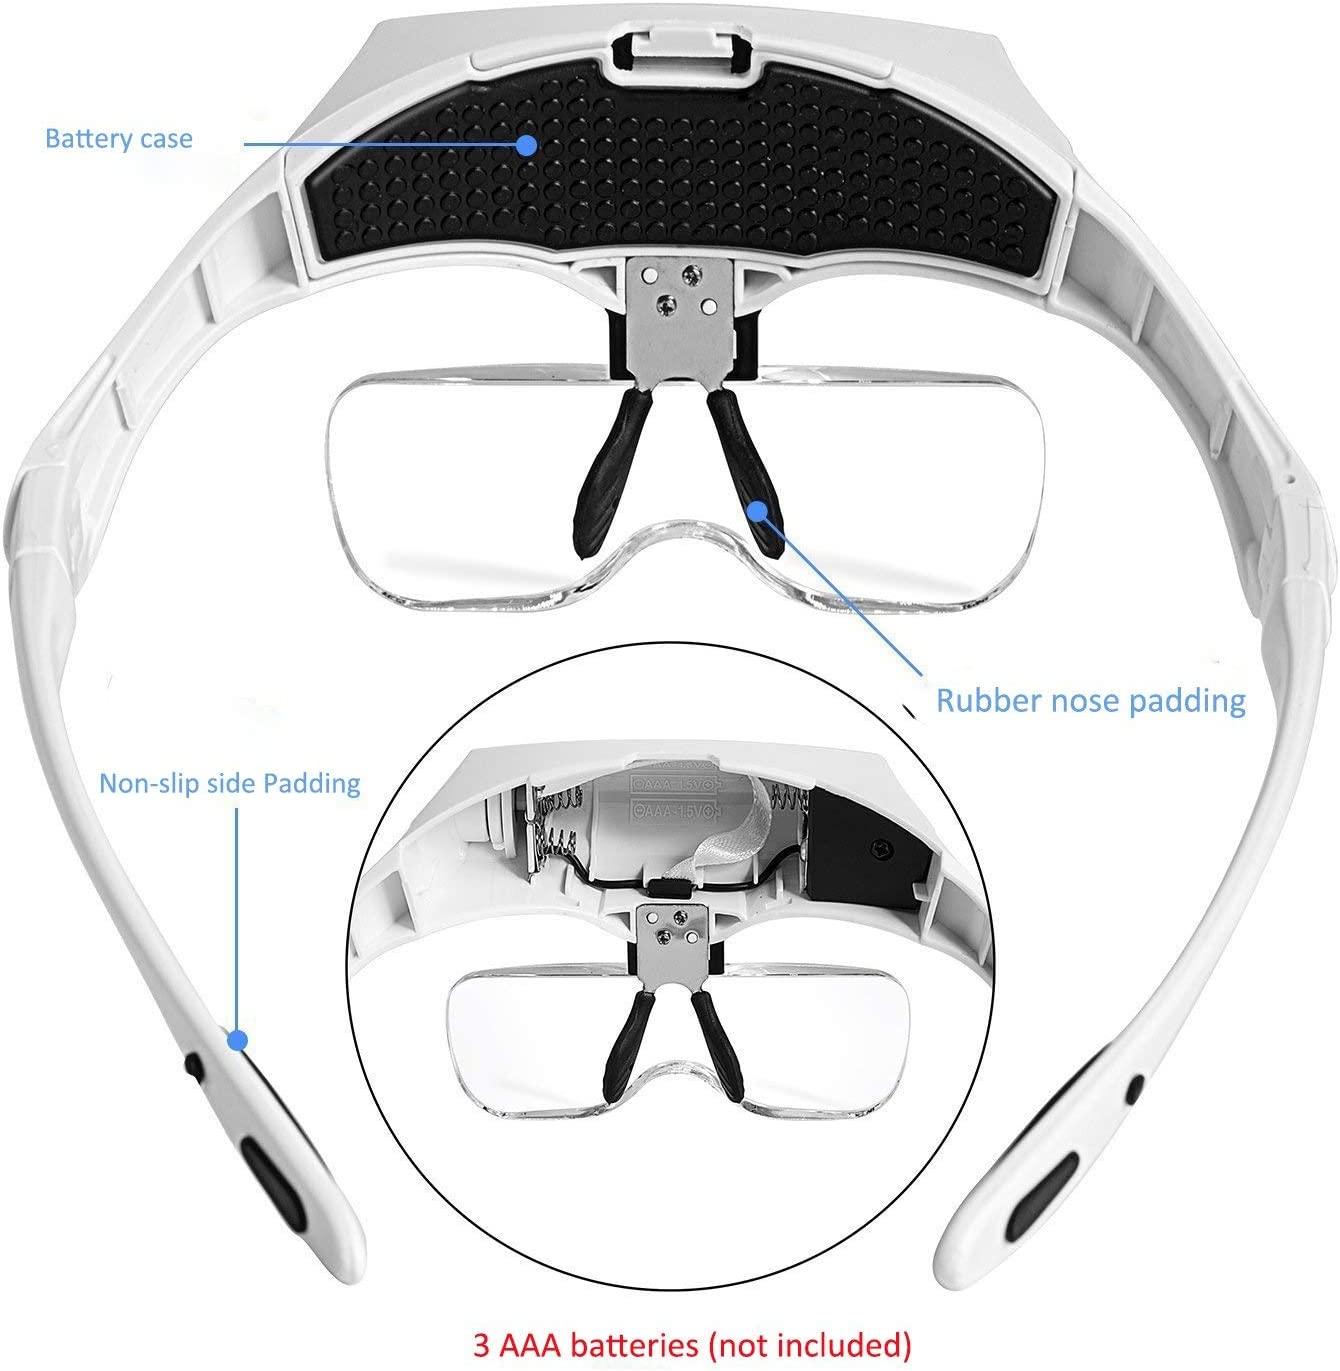 Light Weight Cefrank Handsfree Magnifier Head Lamp Illuminated LED Head Magnifying Glass Loupe 1.0X, 1.5X, 2.0X, 2.5X, 3.5X